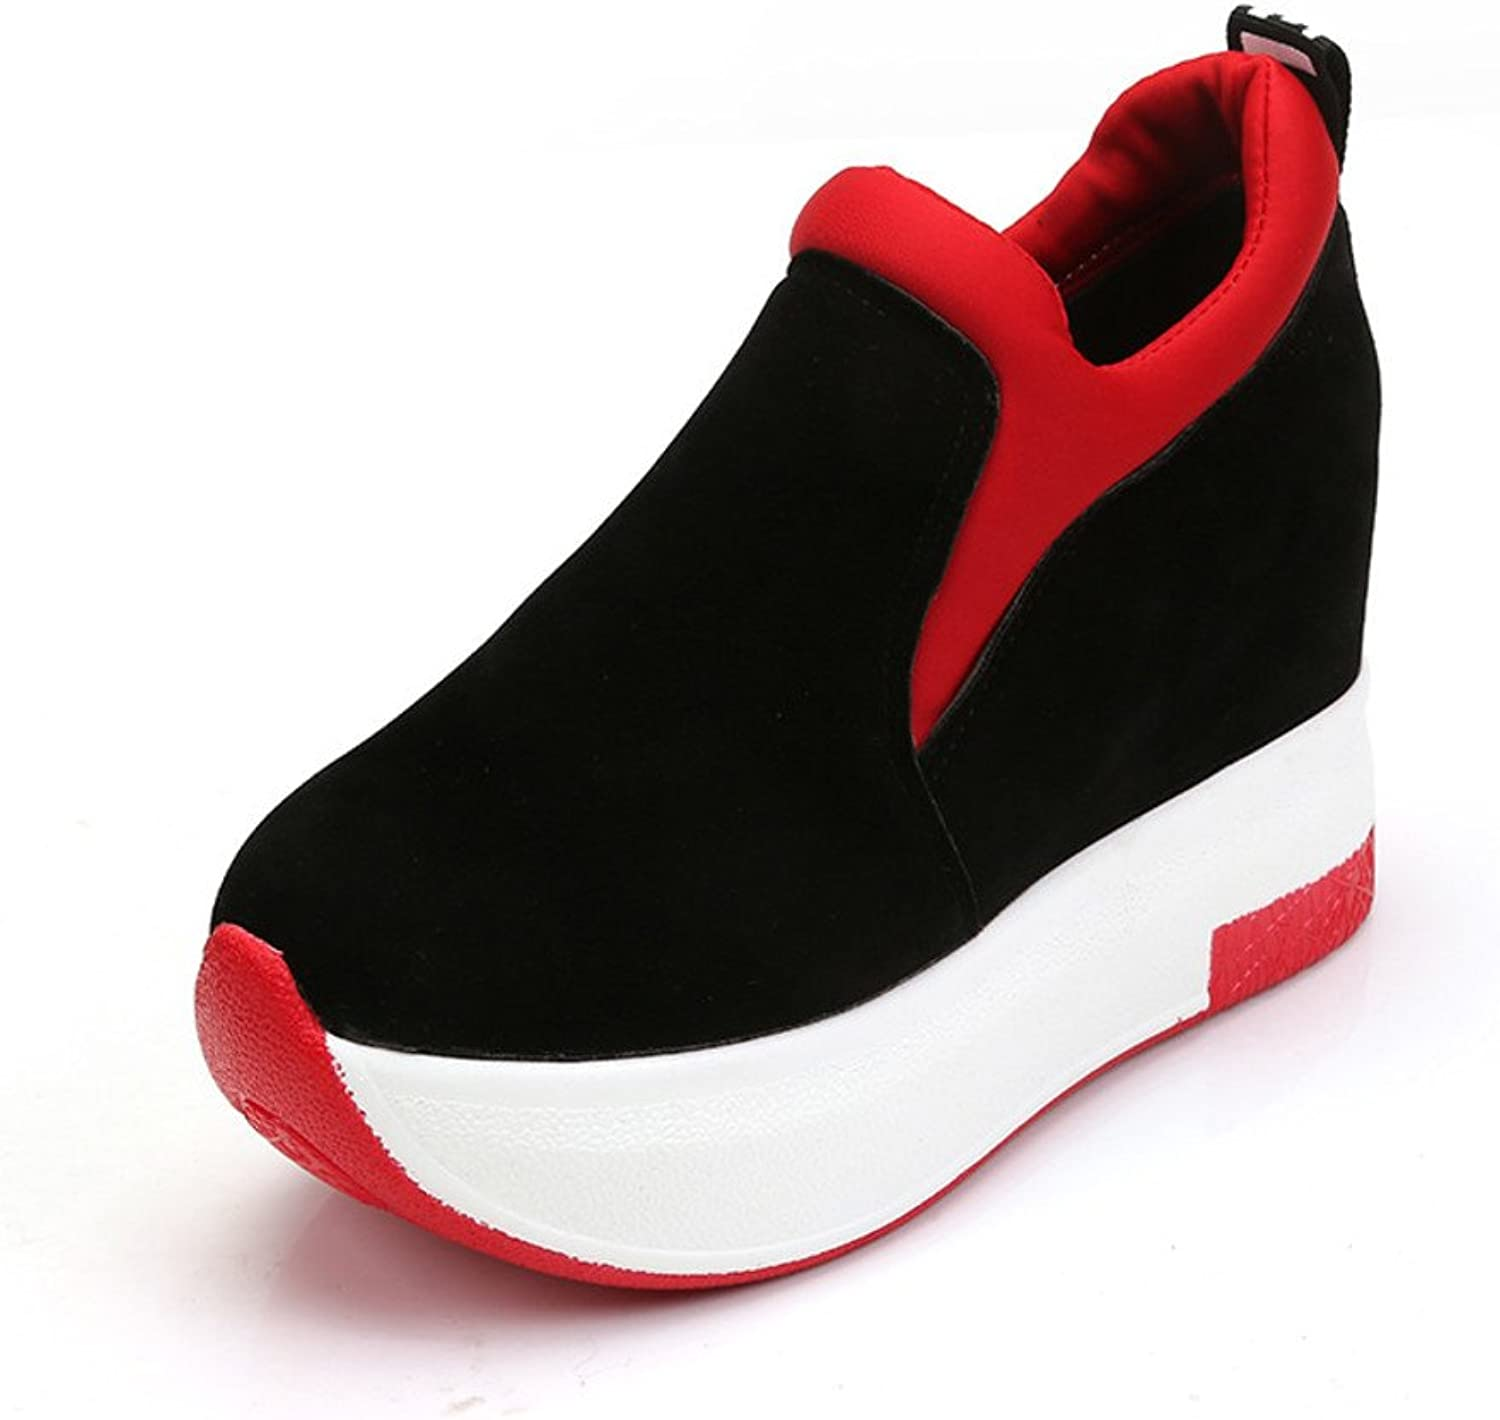 Increased in thick-soled shoes Super high heel platform motion shoes casual shoes